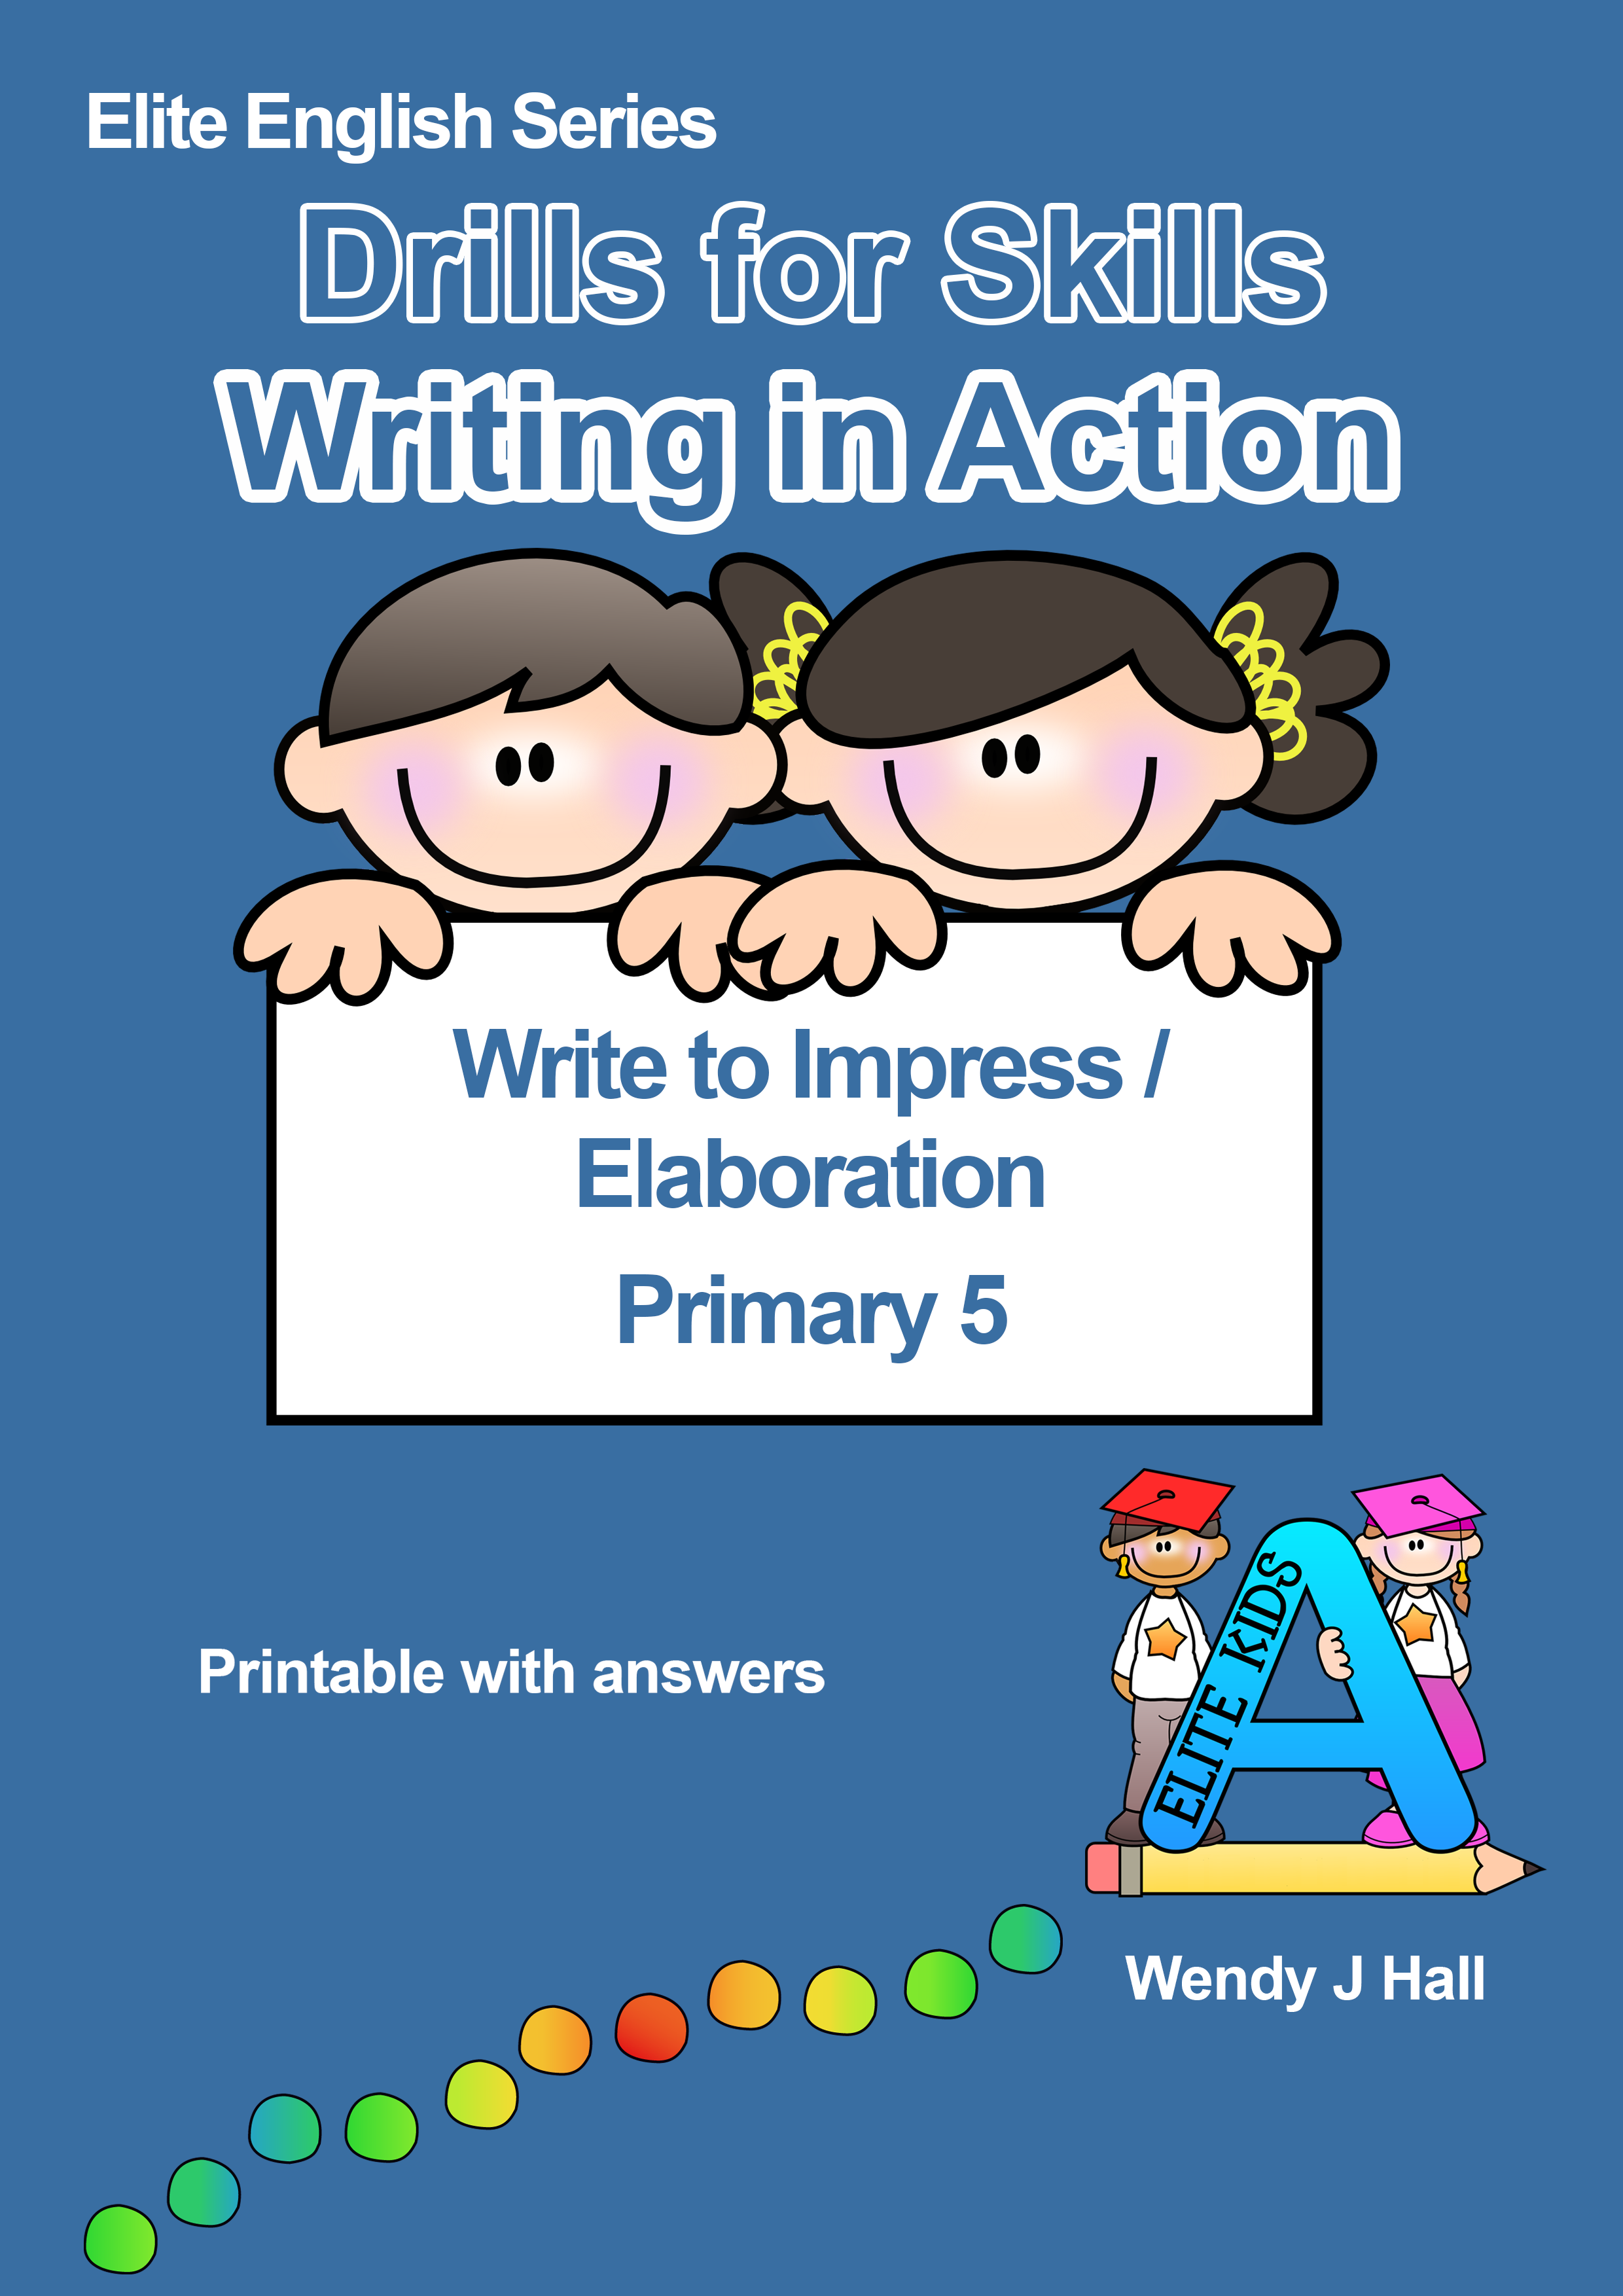 Drills for Skills - Writing in action | Write to Impress